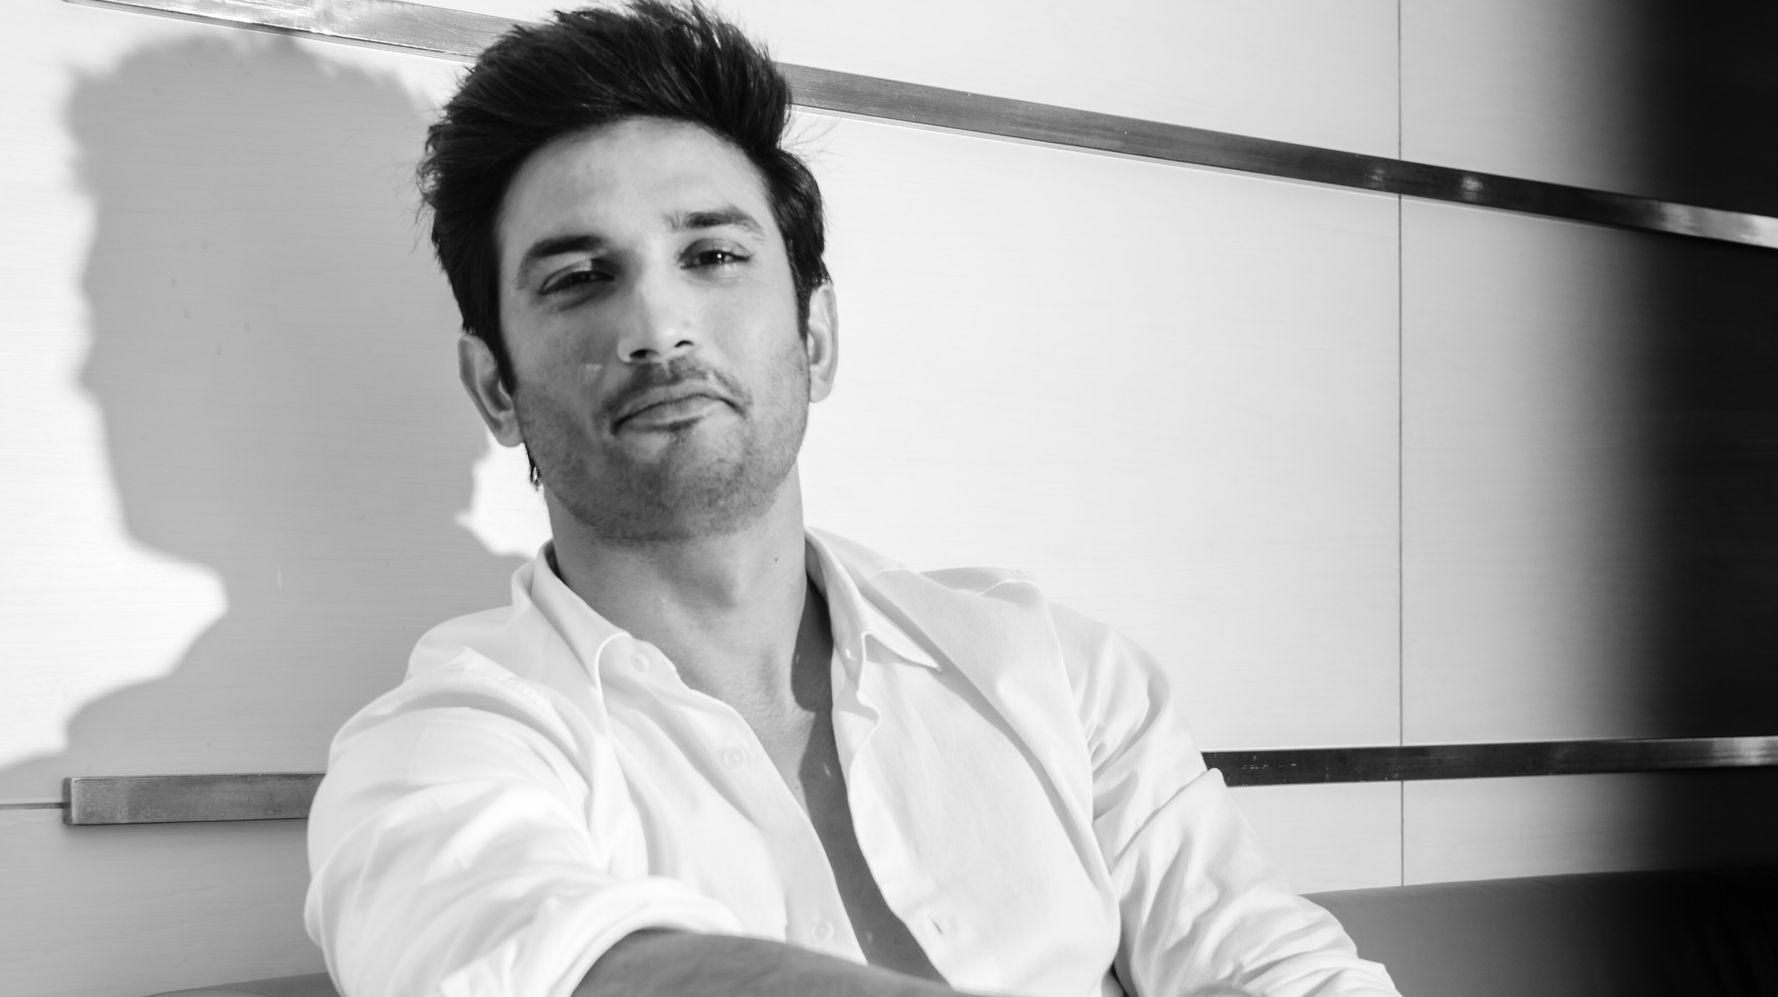 Sushant Singh Rajput On Love, #MeToo And Getting His Due In ...